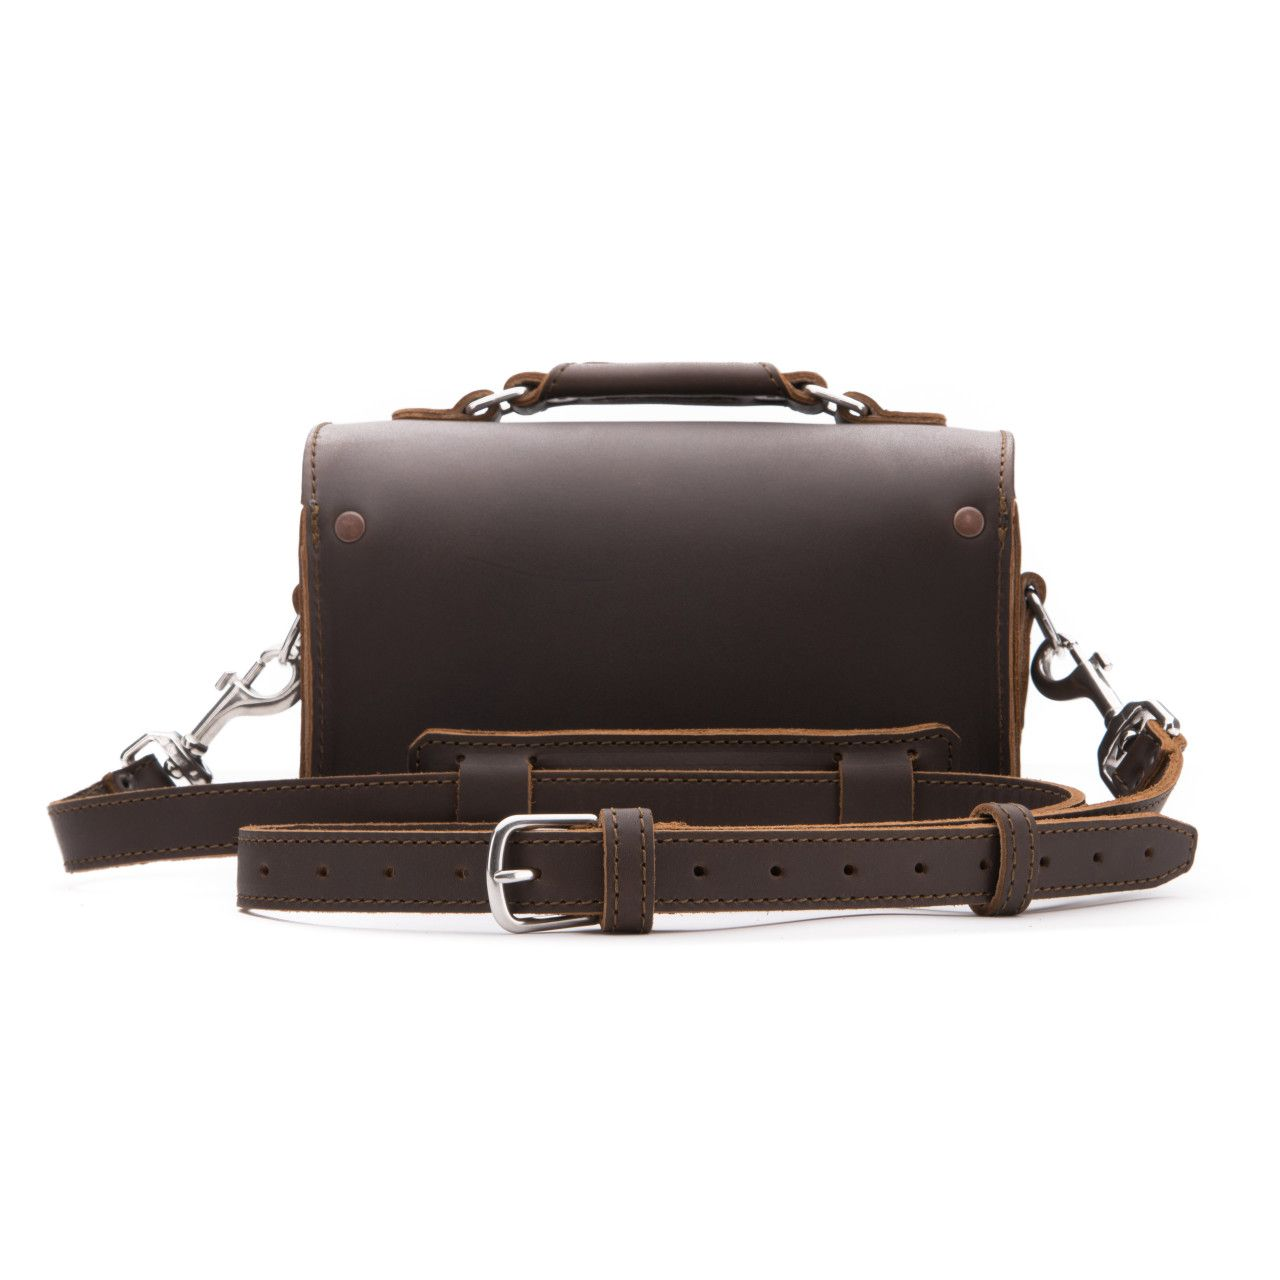 leather travel case medium in dark coffee brown leather